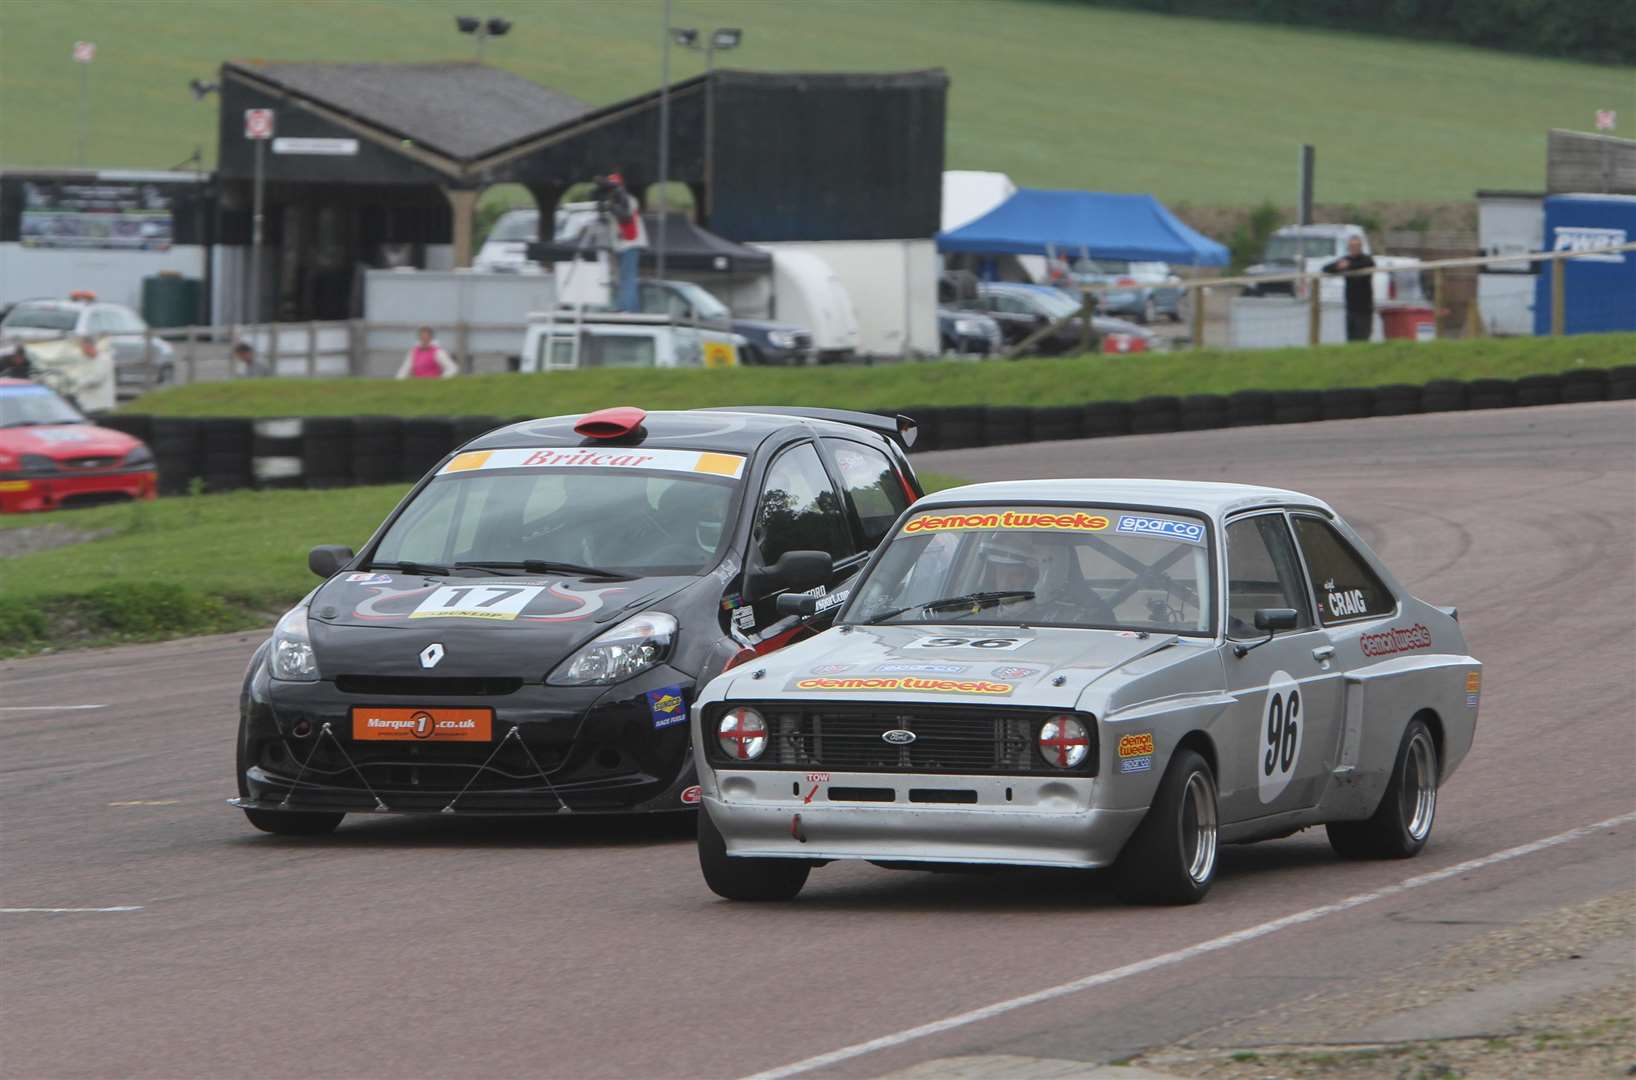 Elham area residents Nigel Craig (right) and Tony Skelton battle it out at Lydden in 2012. The landmark 'Y' roof of the former scrutineering bay can be seen in the background. Picture: Kerry Dunlop